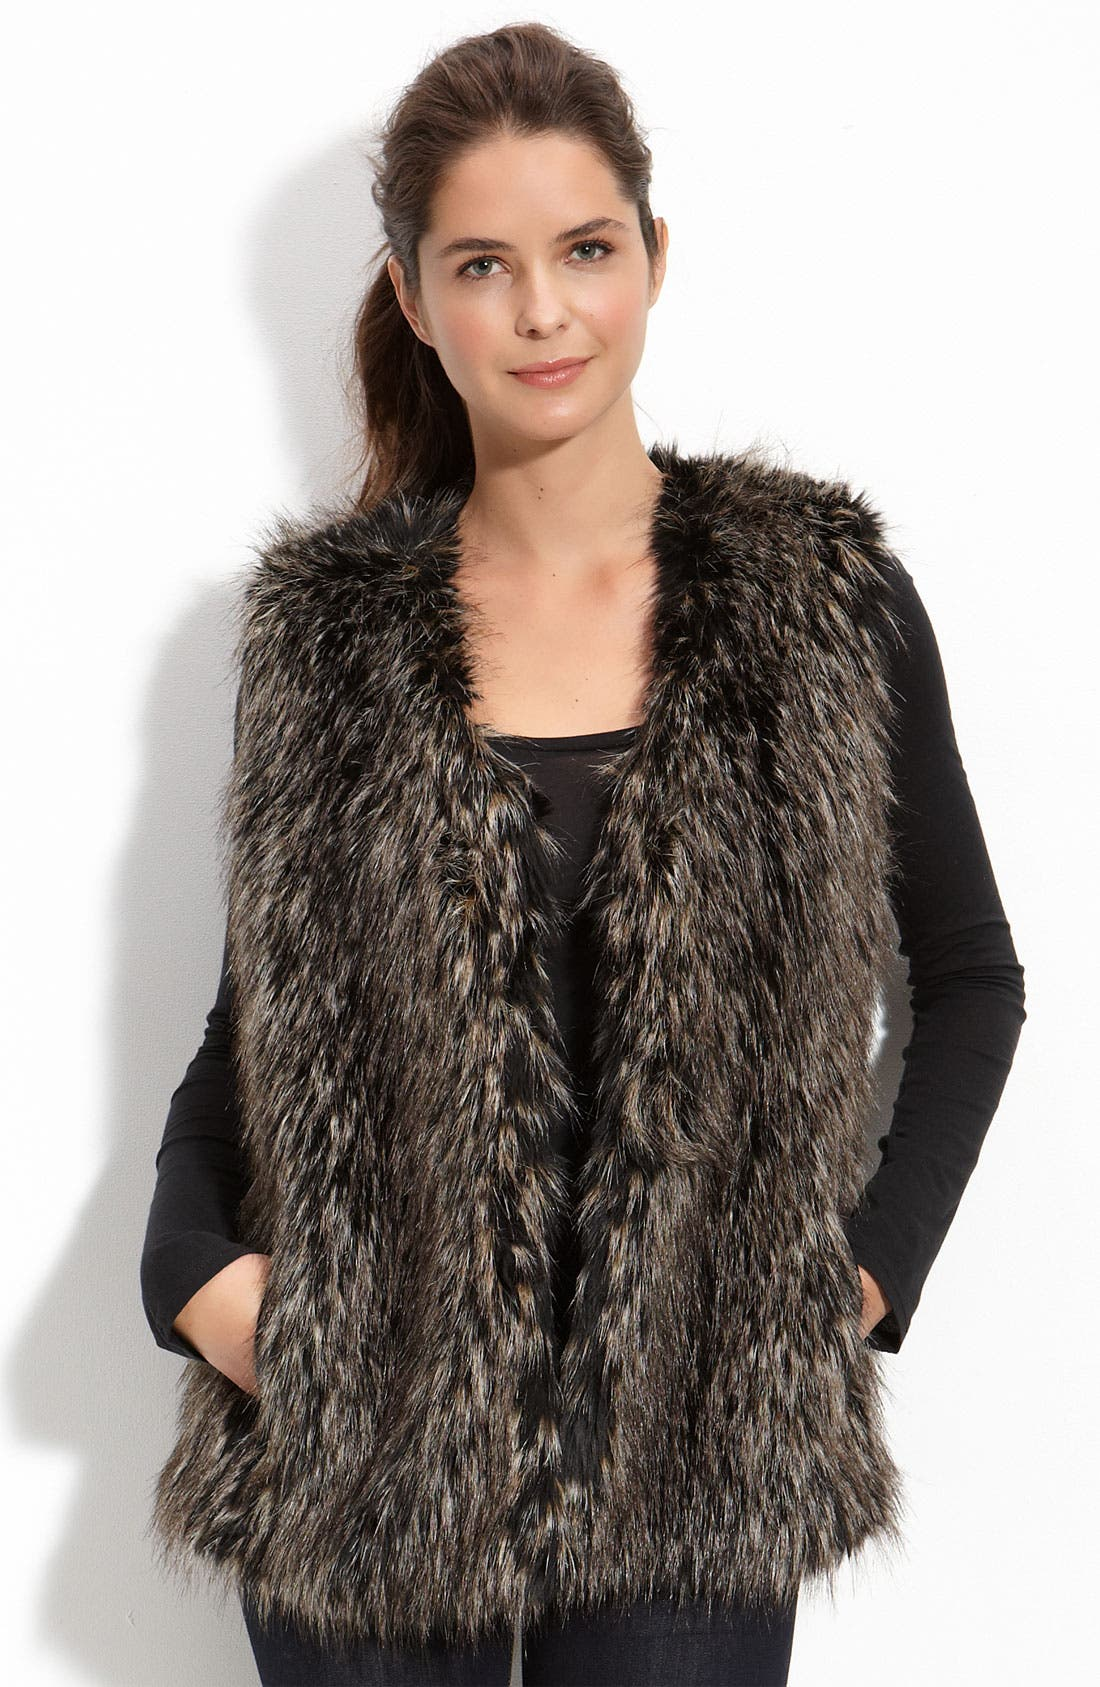 Alternate Image 1 Selected - Via Spiga 'Savona' Faux Fur Vest